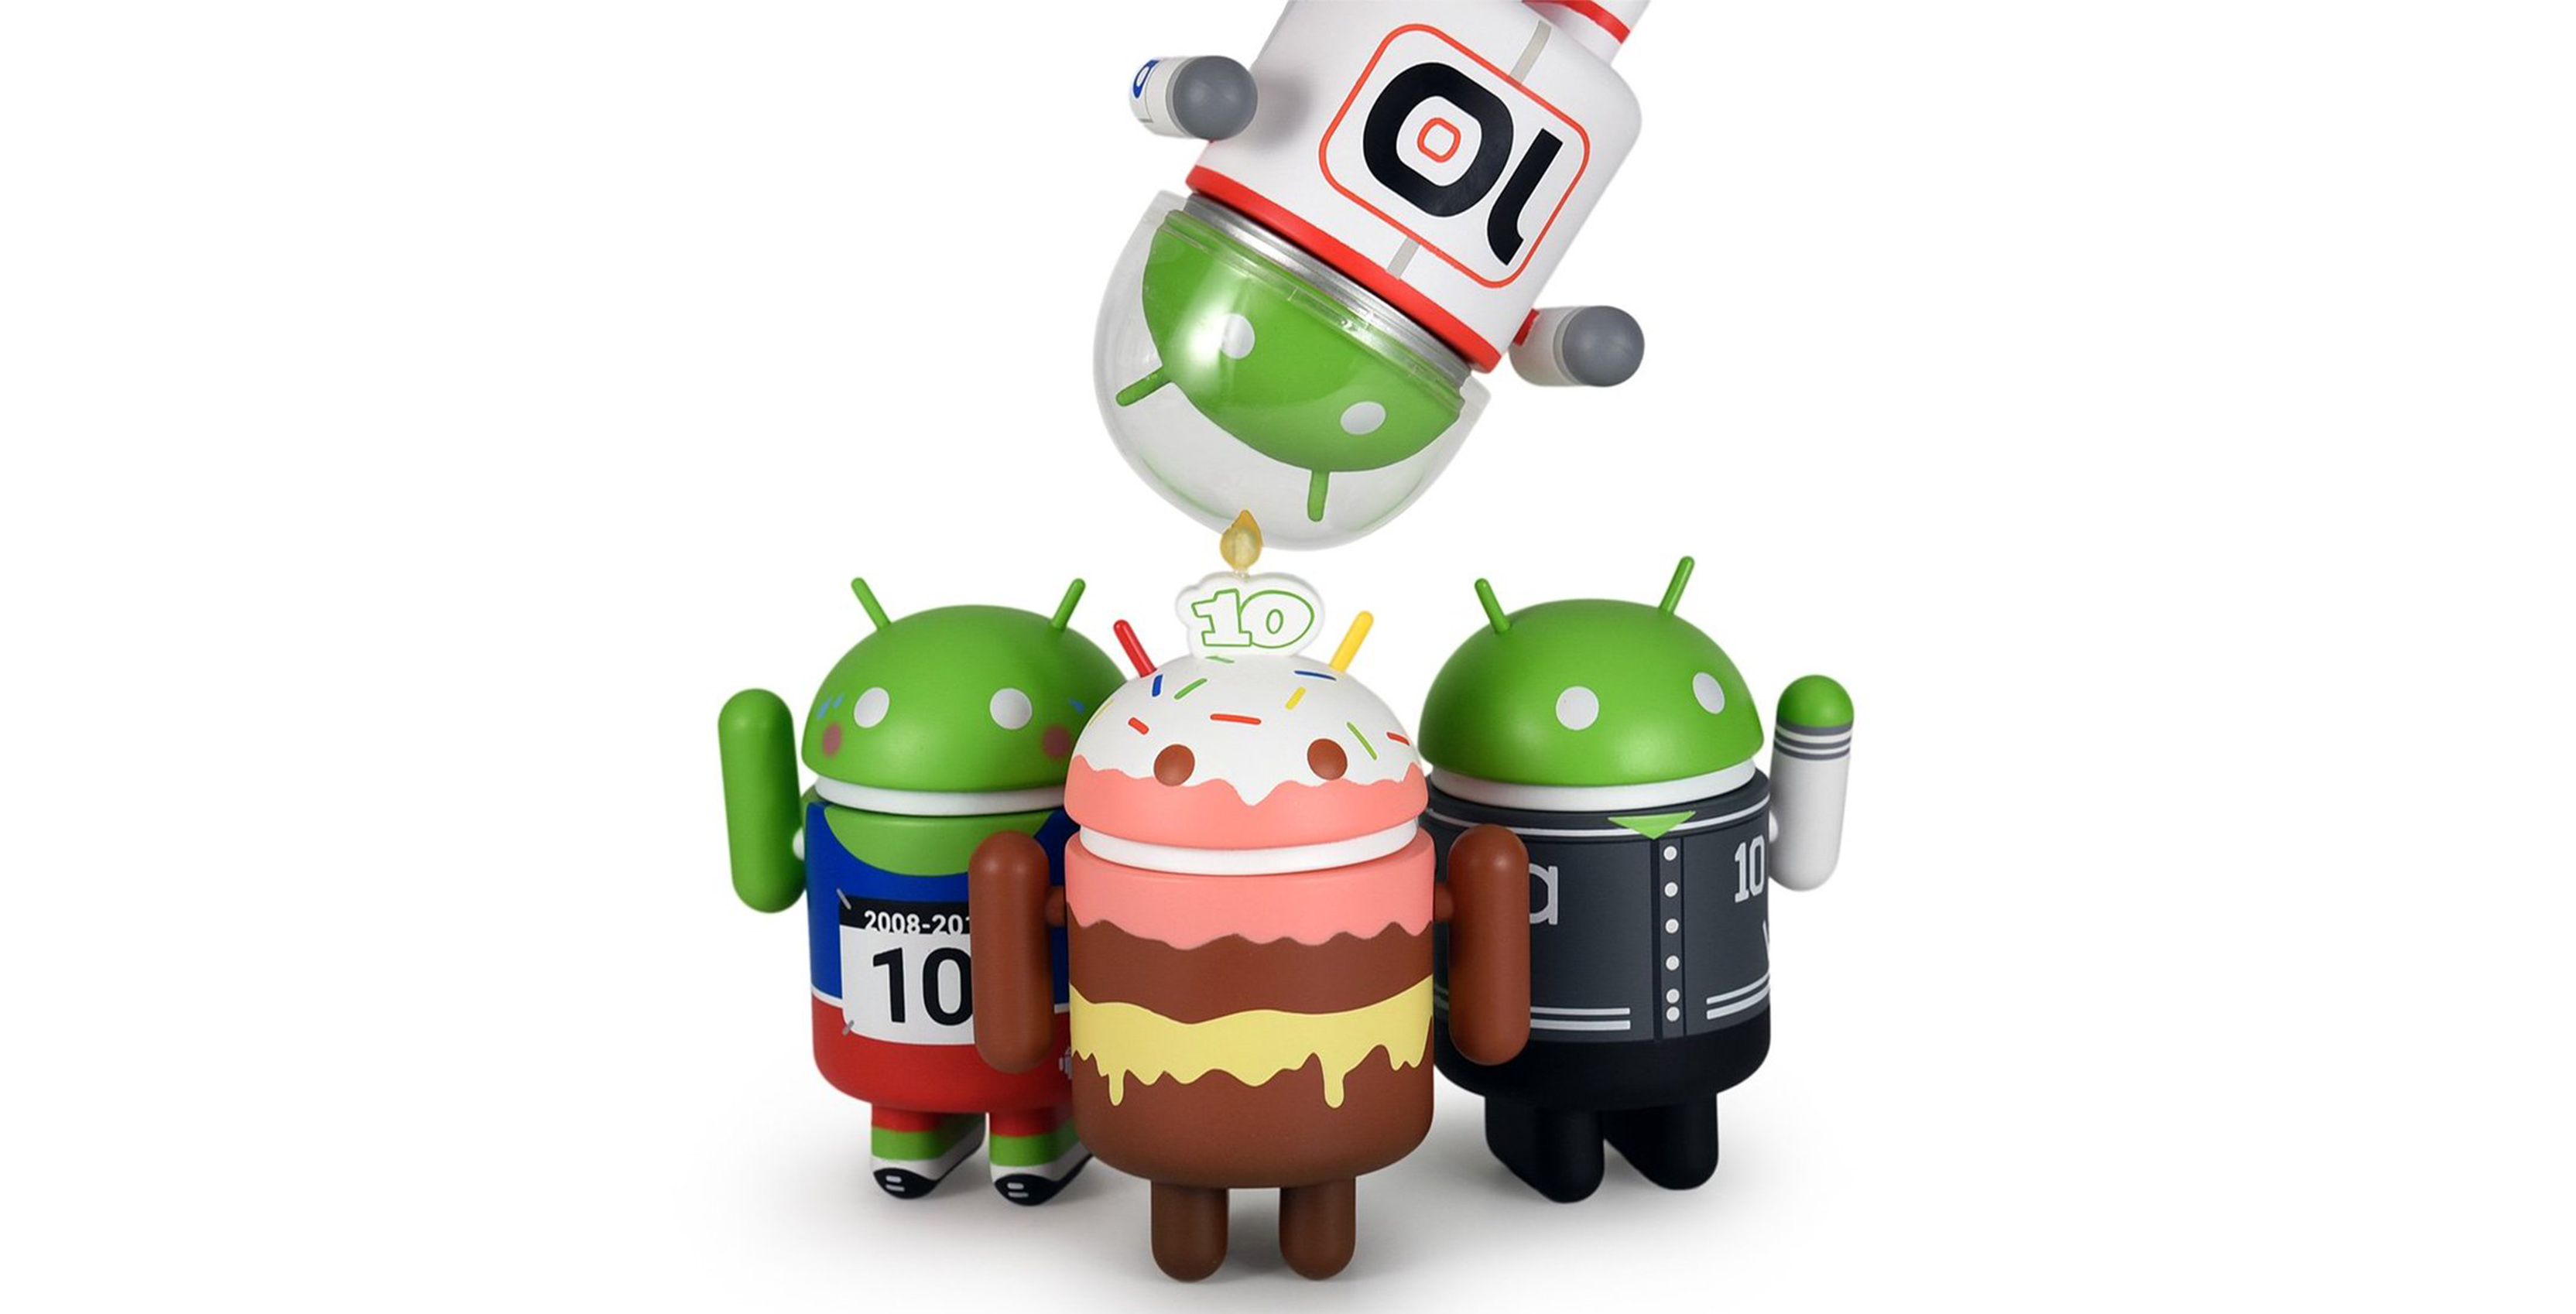 Android 10th birthday figures